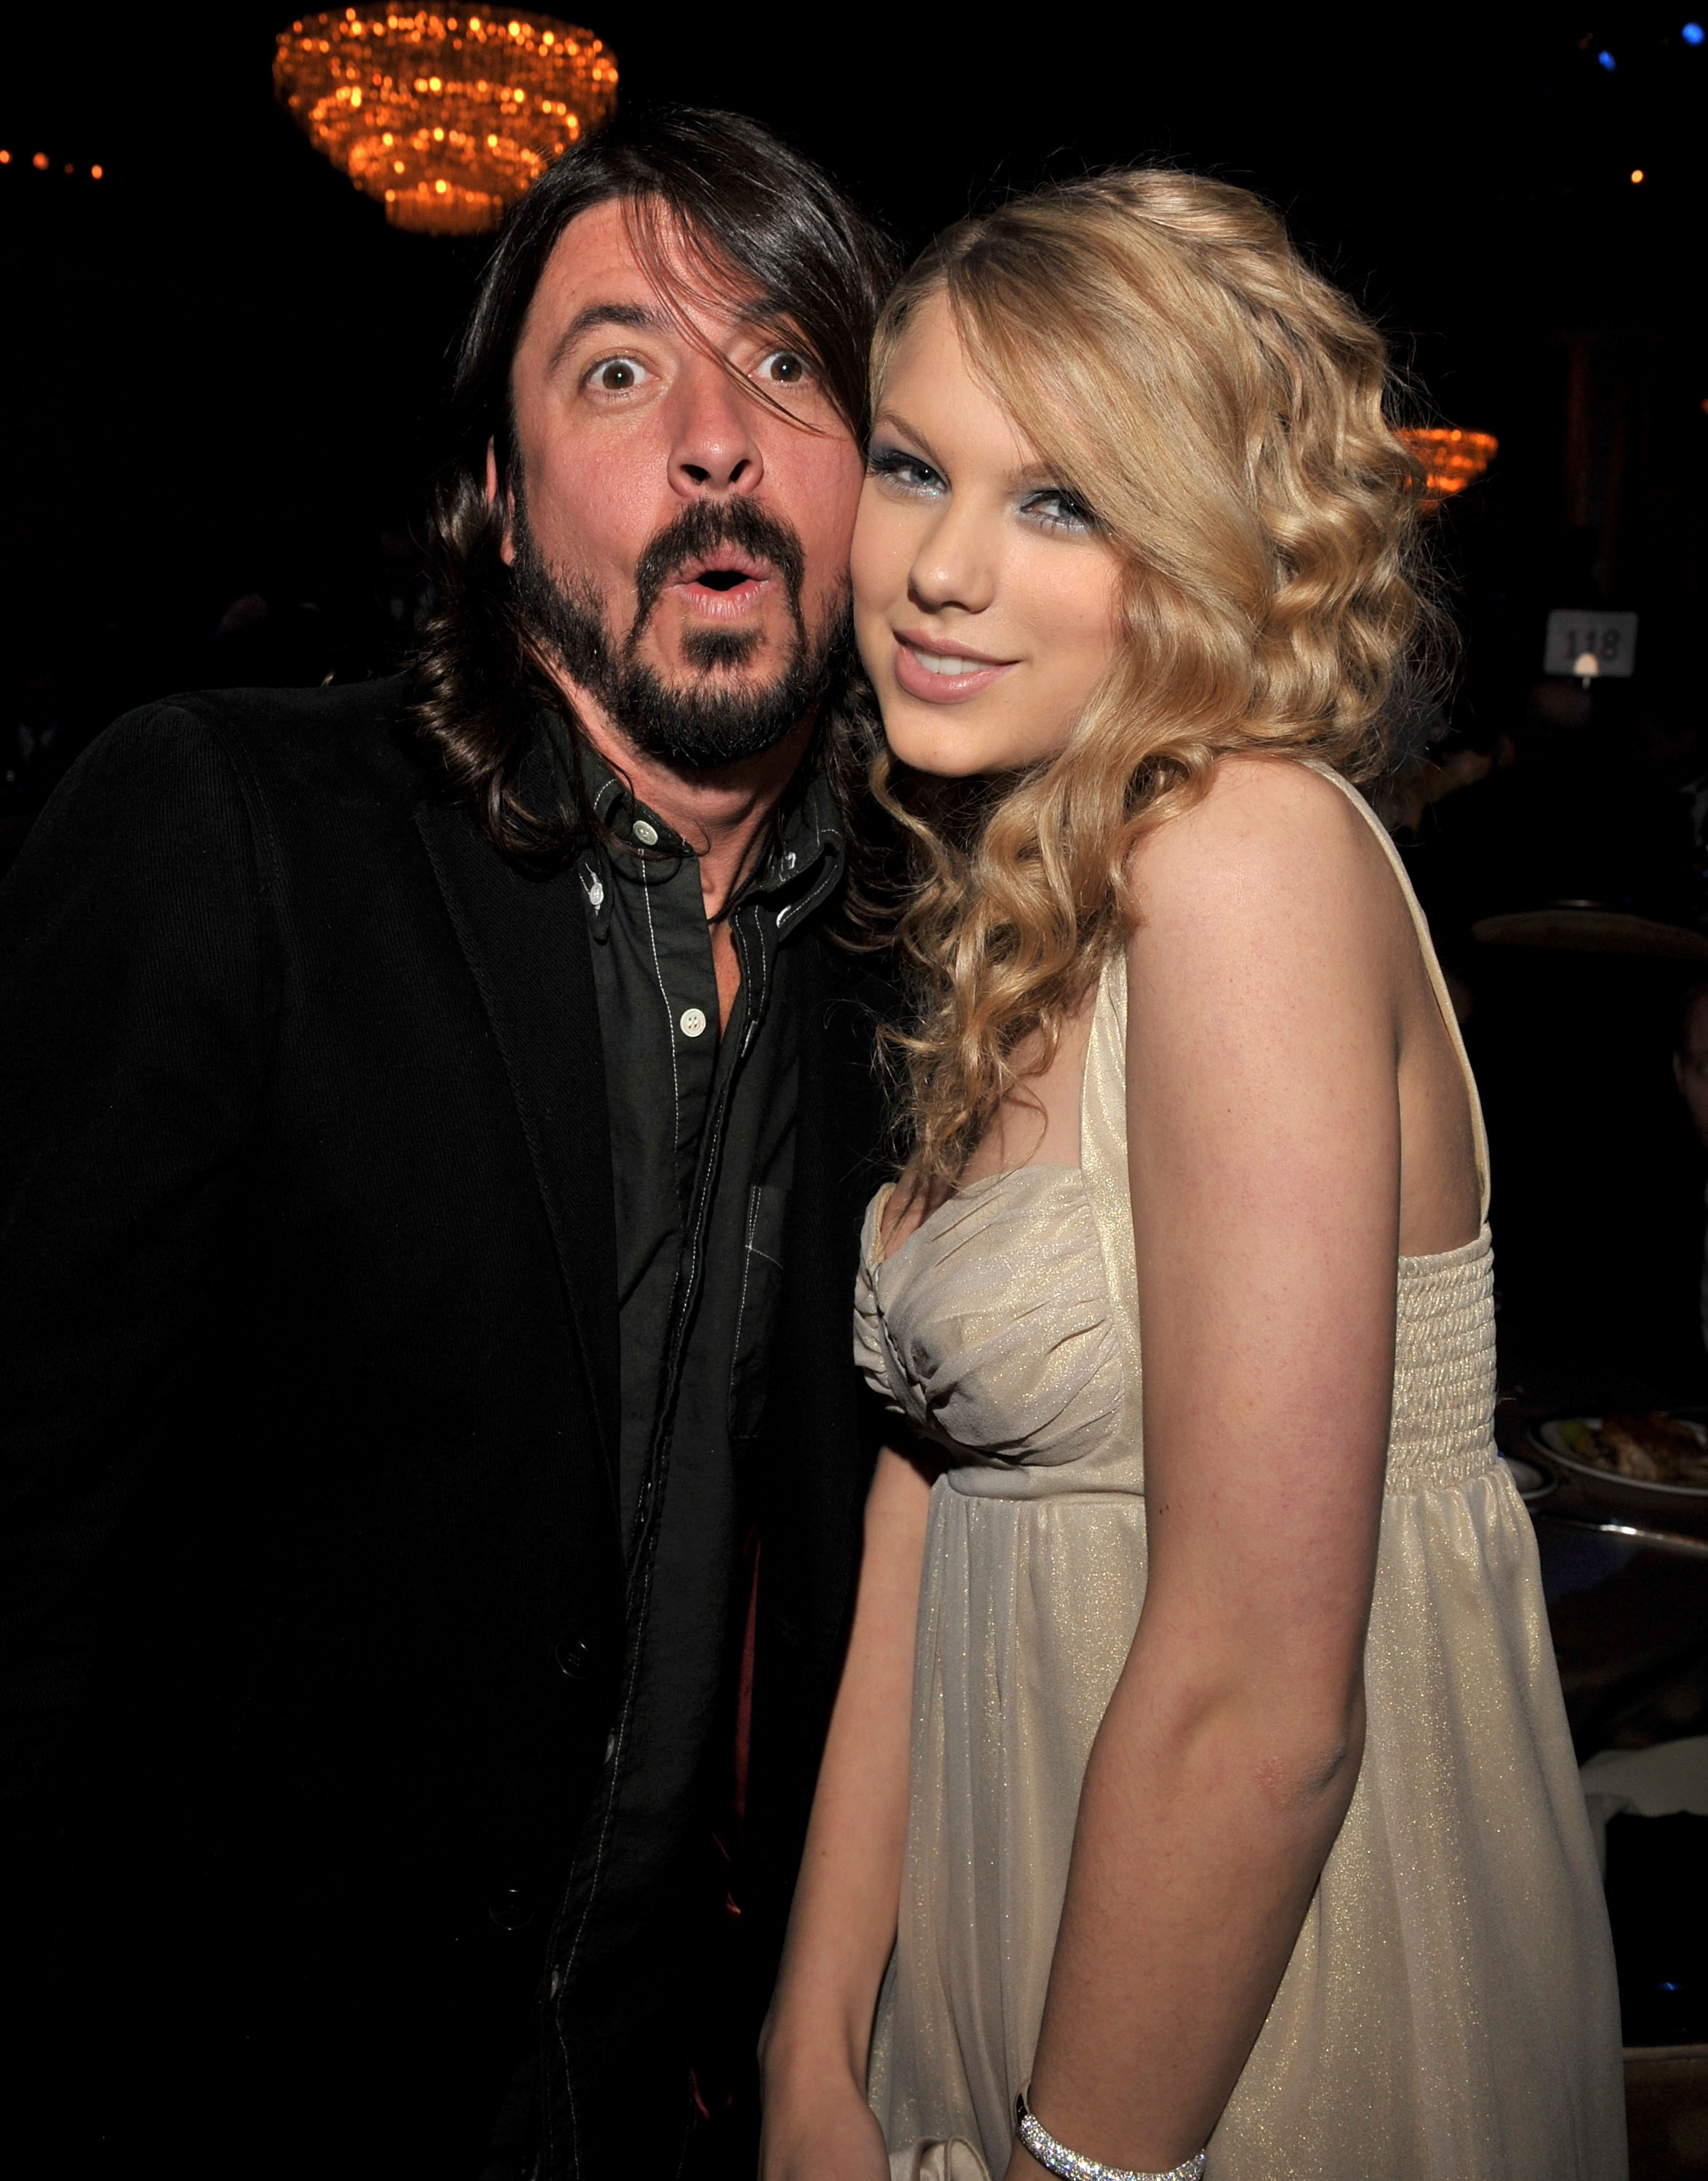 Dave Grohl, Stevie Wonder, Miley Cyrus to Present at Grammys